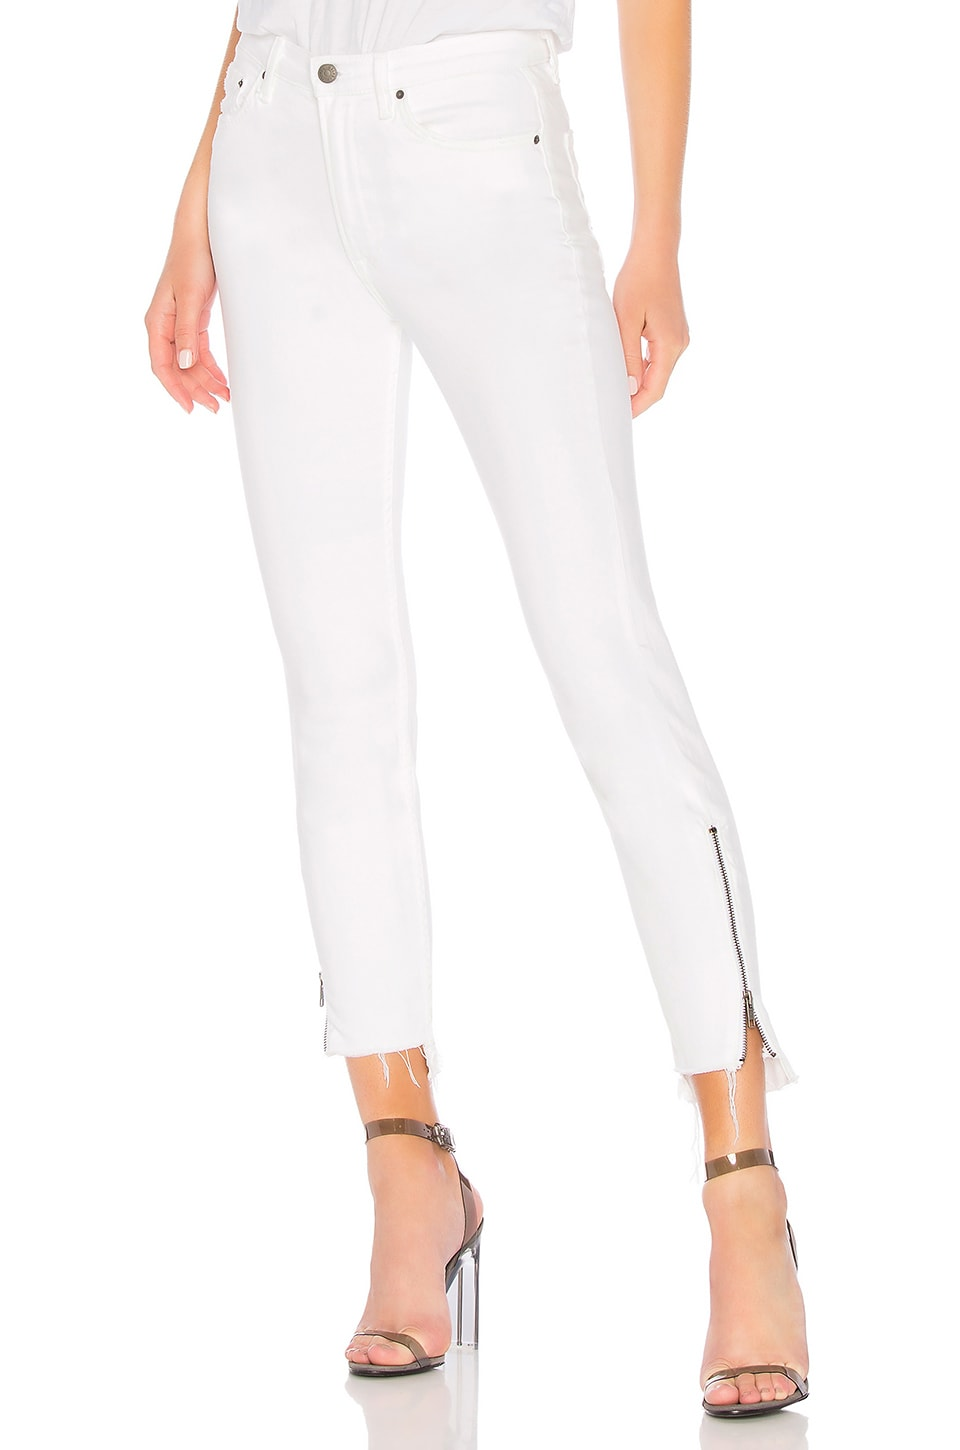 GRLFRND Kendall High-Rise Zipper Jean in White Noise